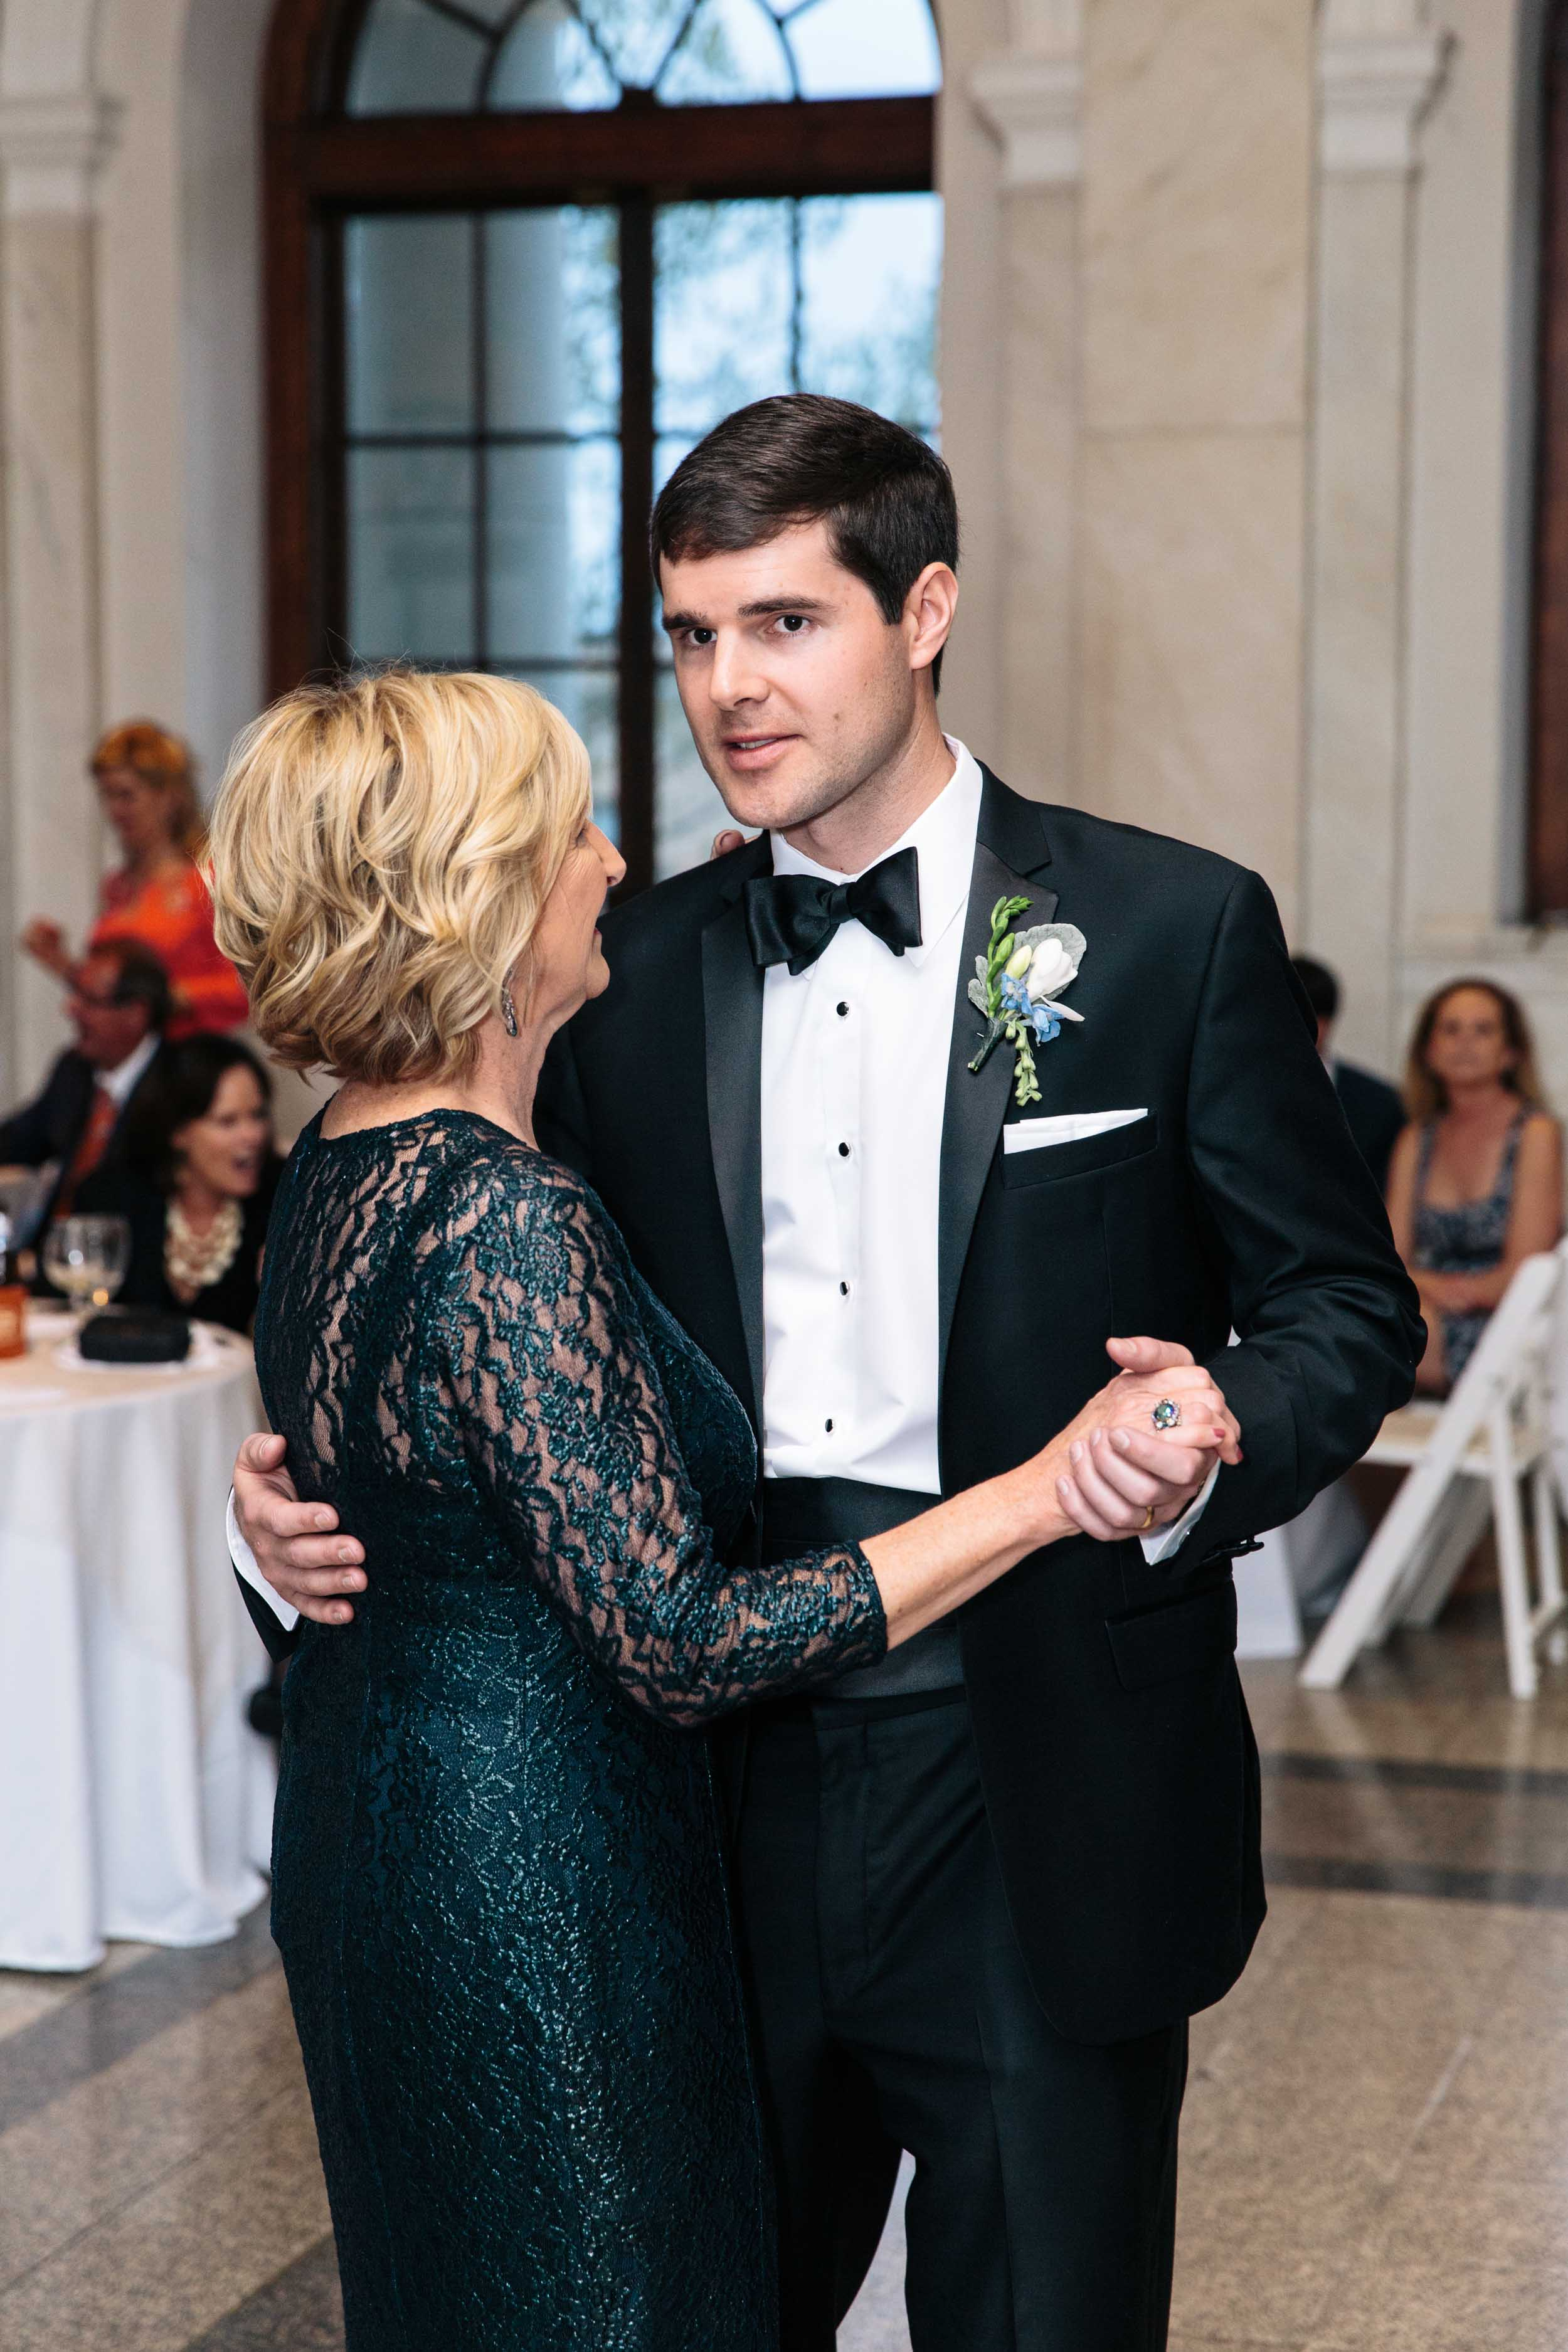 jimmy-rowalt-atlanta-wedding-photography-110.jpg